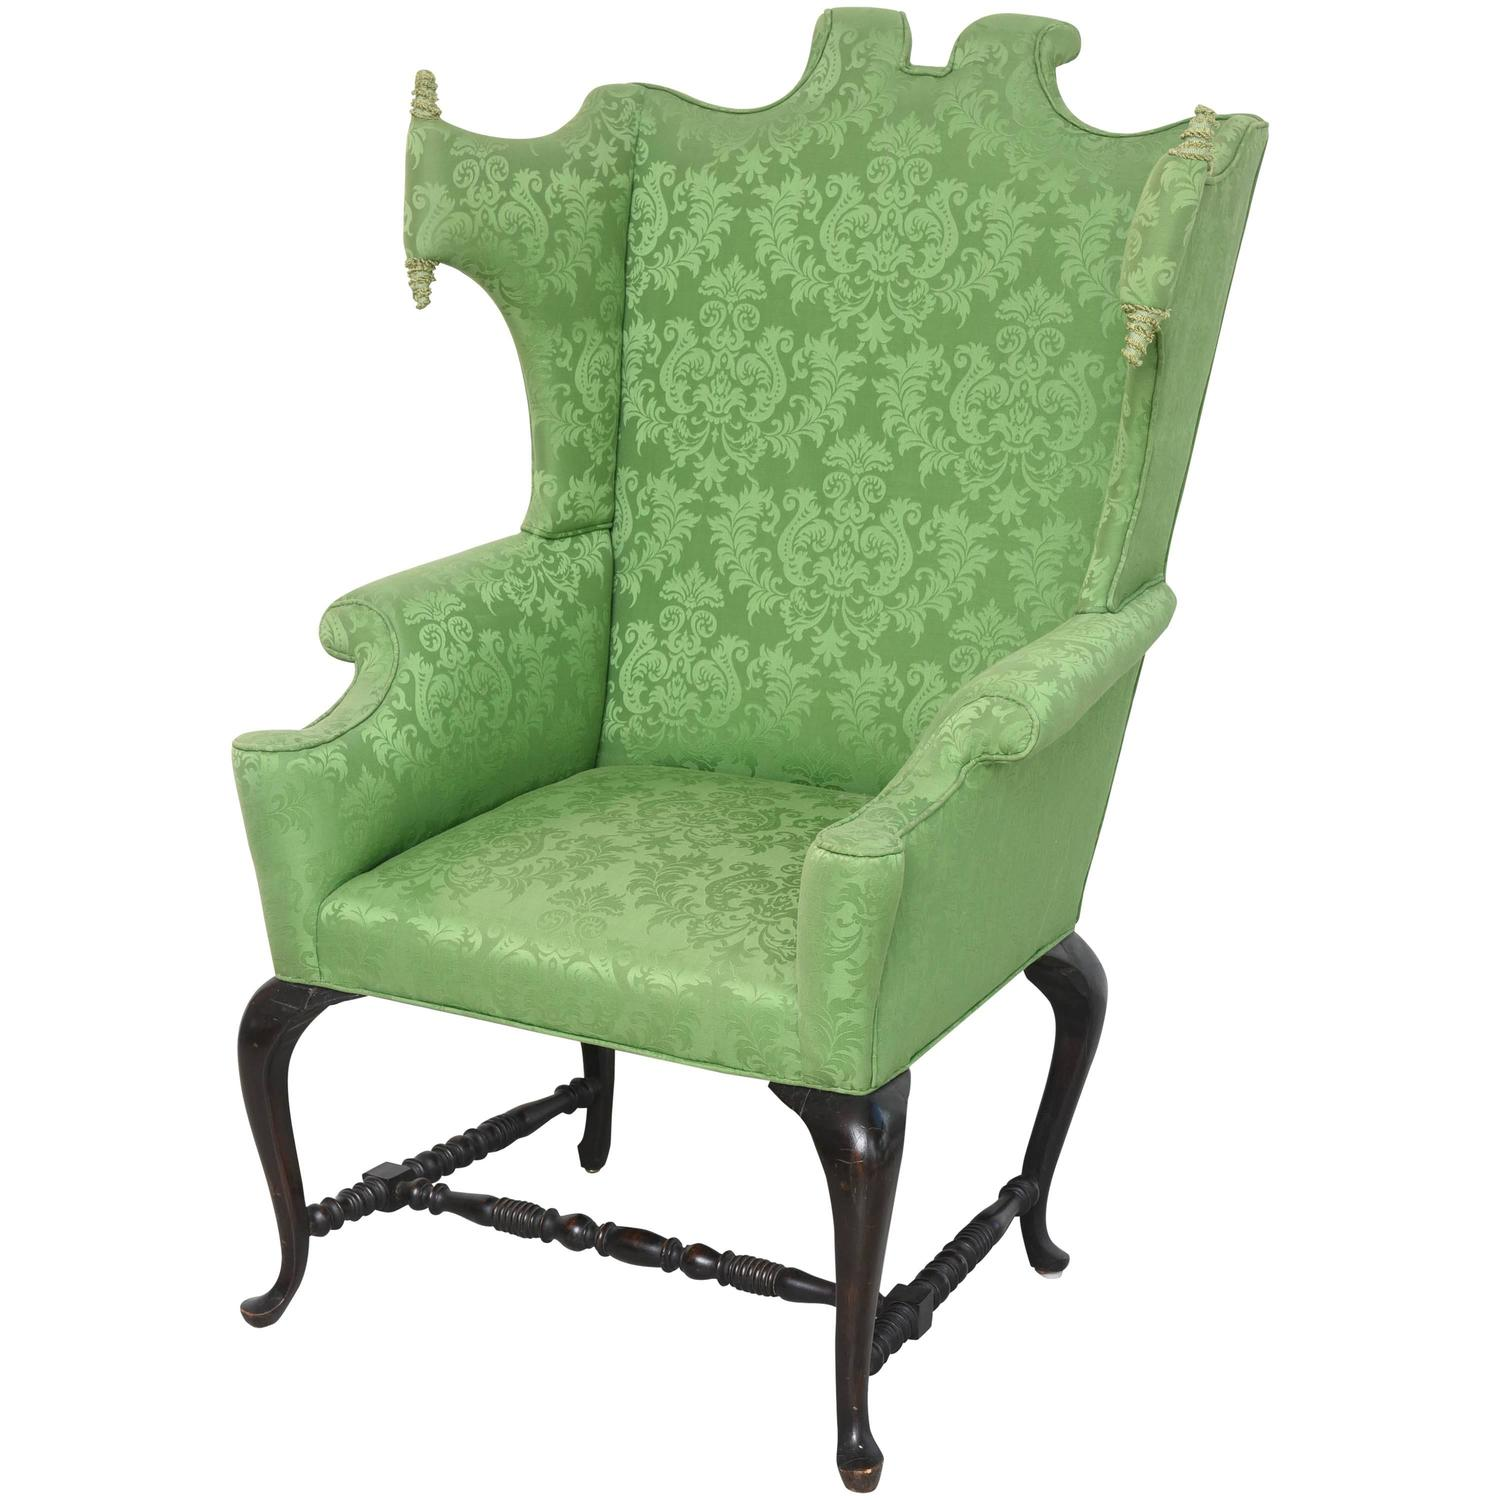 Queen Anne Wingback Chair Whimsical Queen Anne Style Chair At 1stdibs